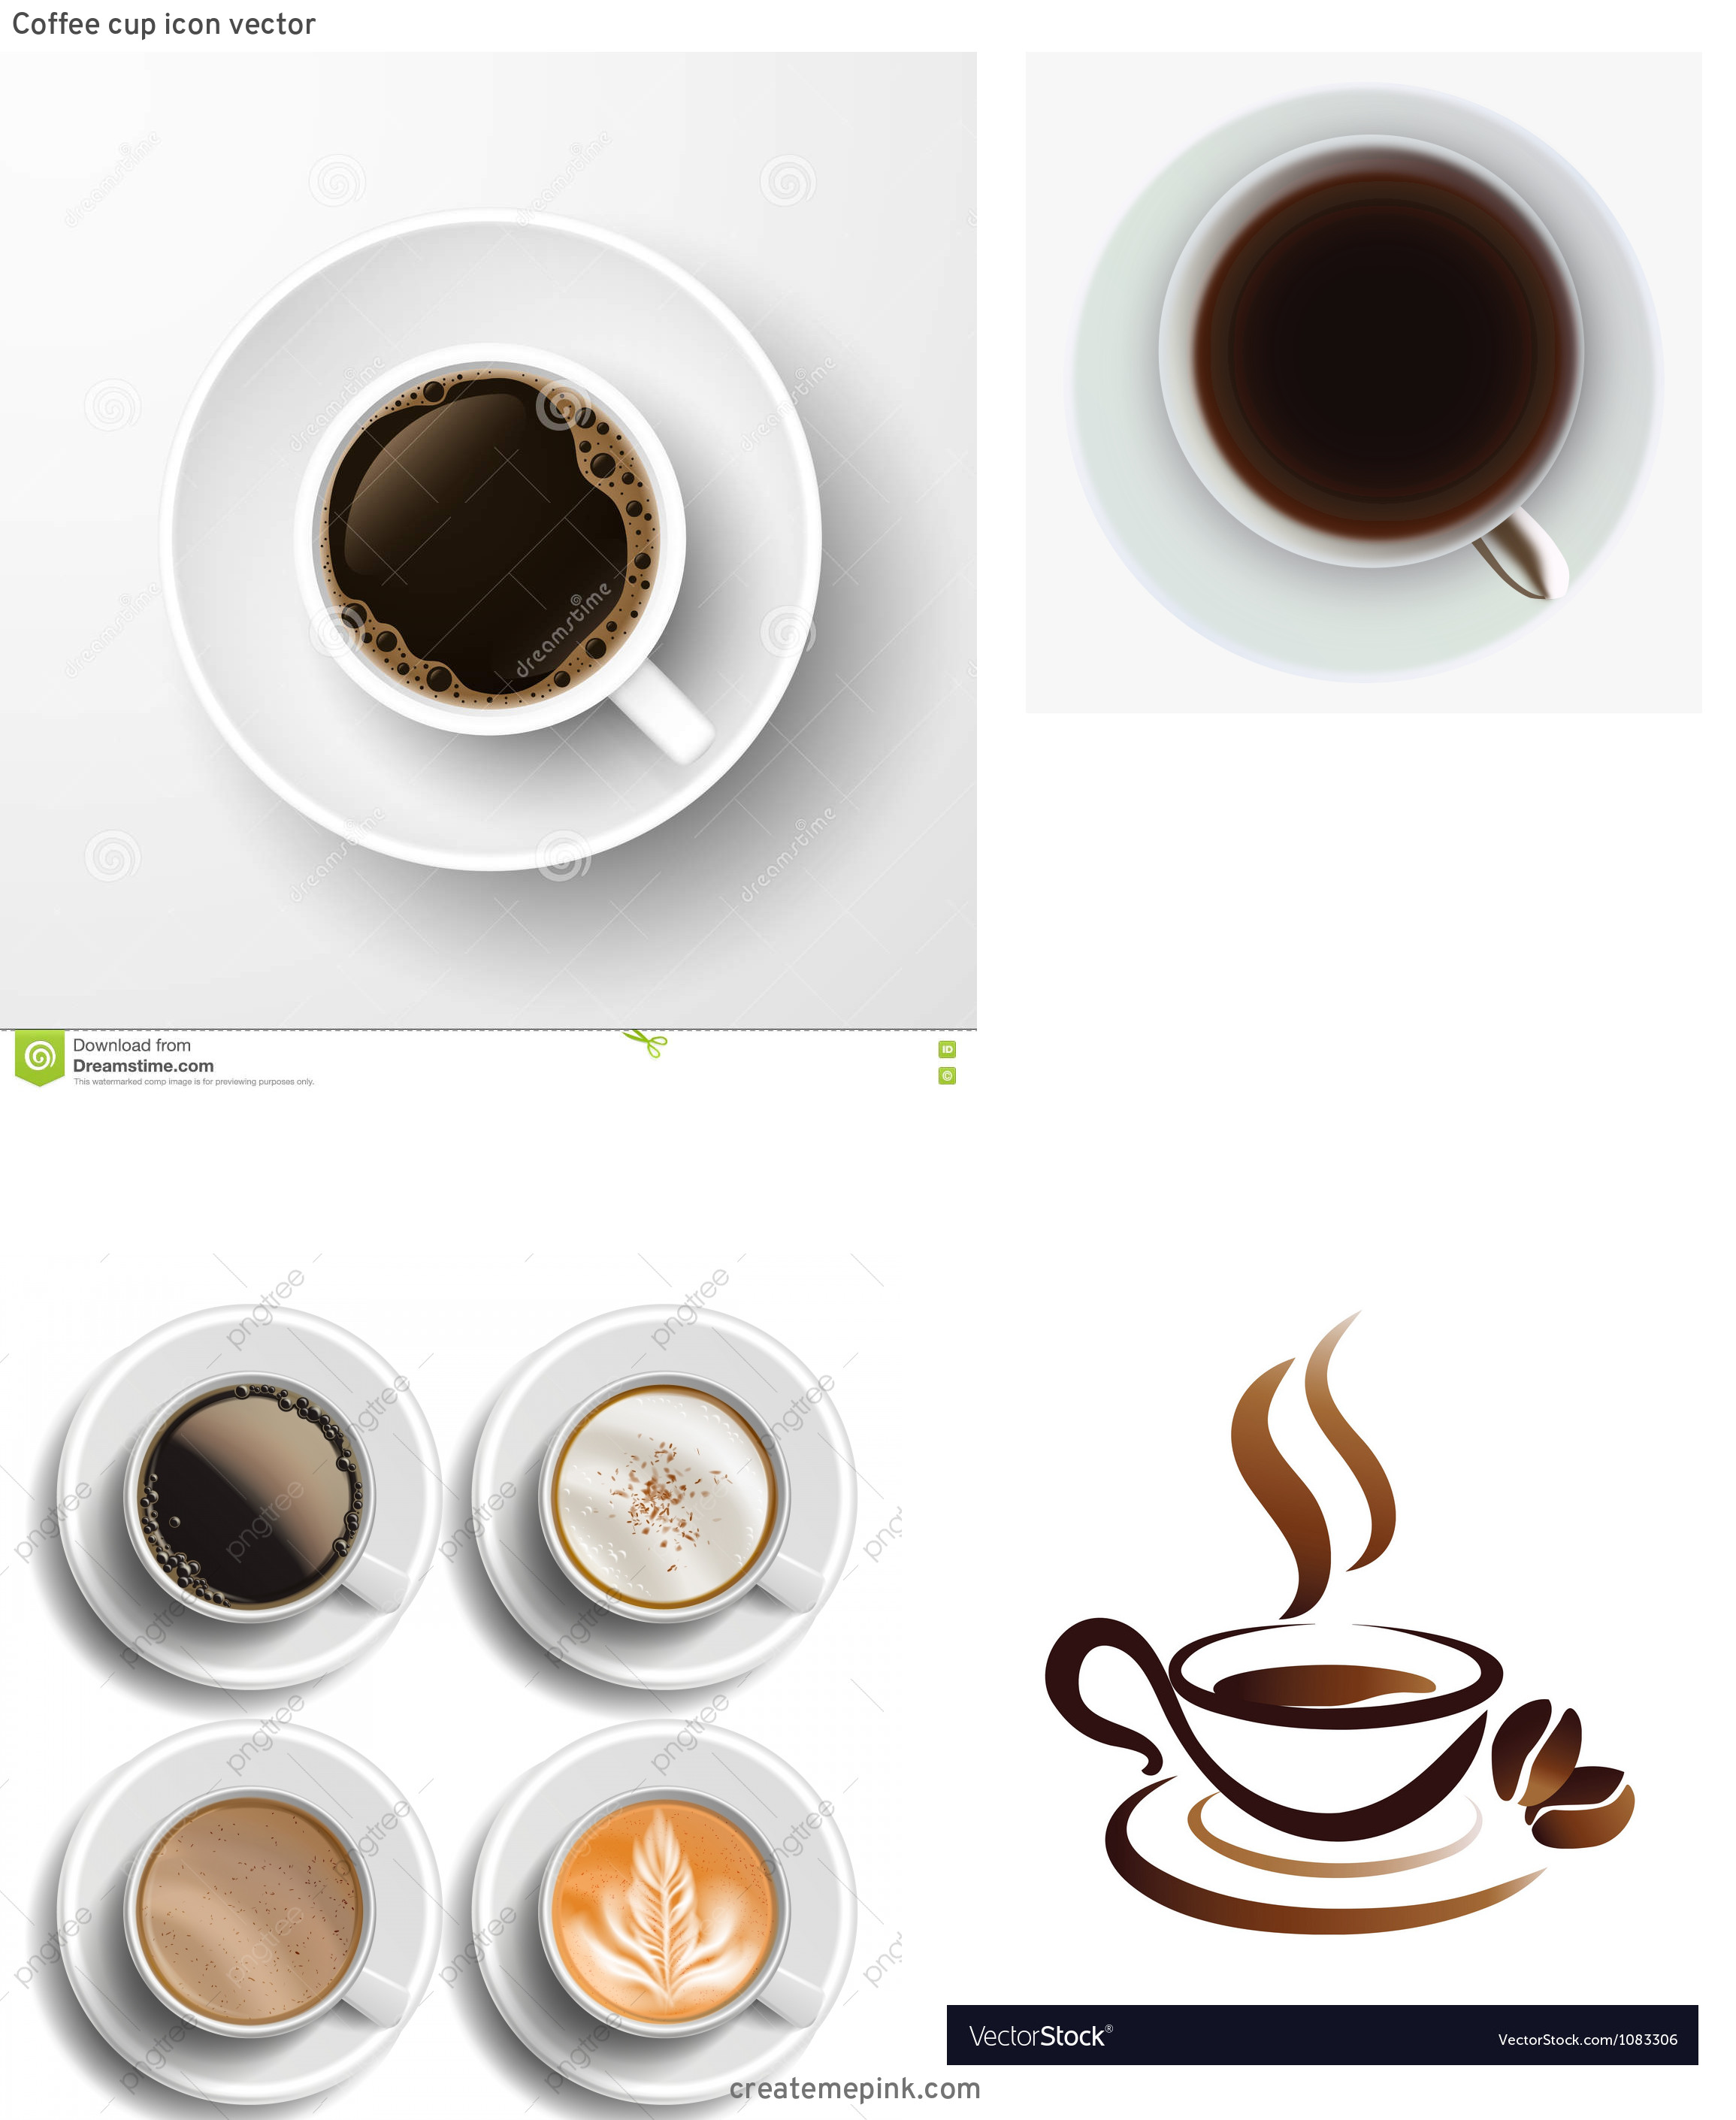 Bird's Eye View Coffee Cup Vector Art: Coffee Cup Icon Vector